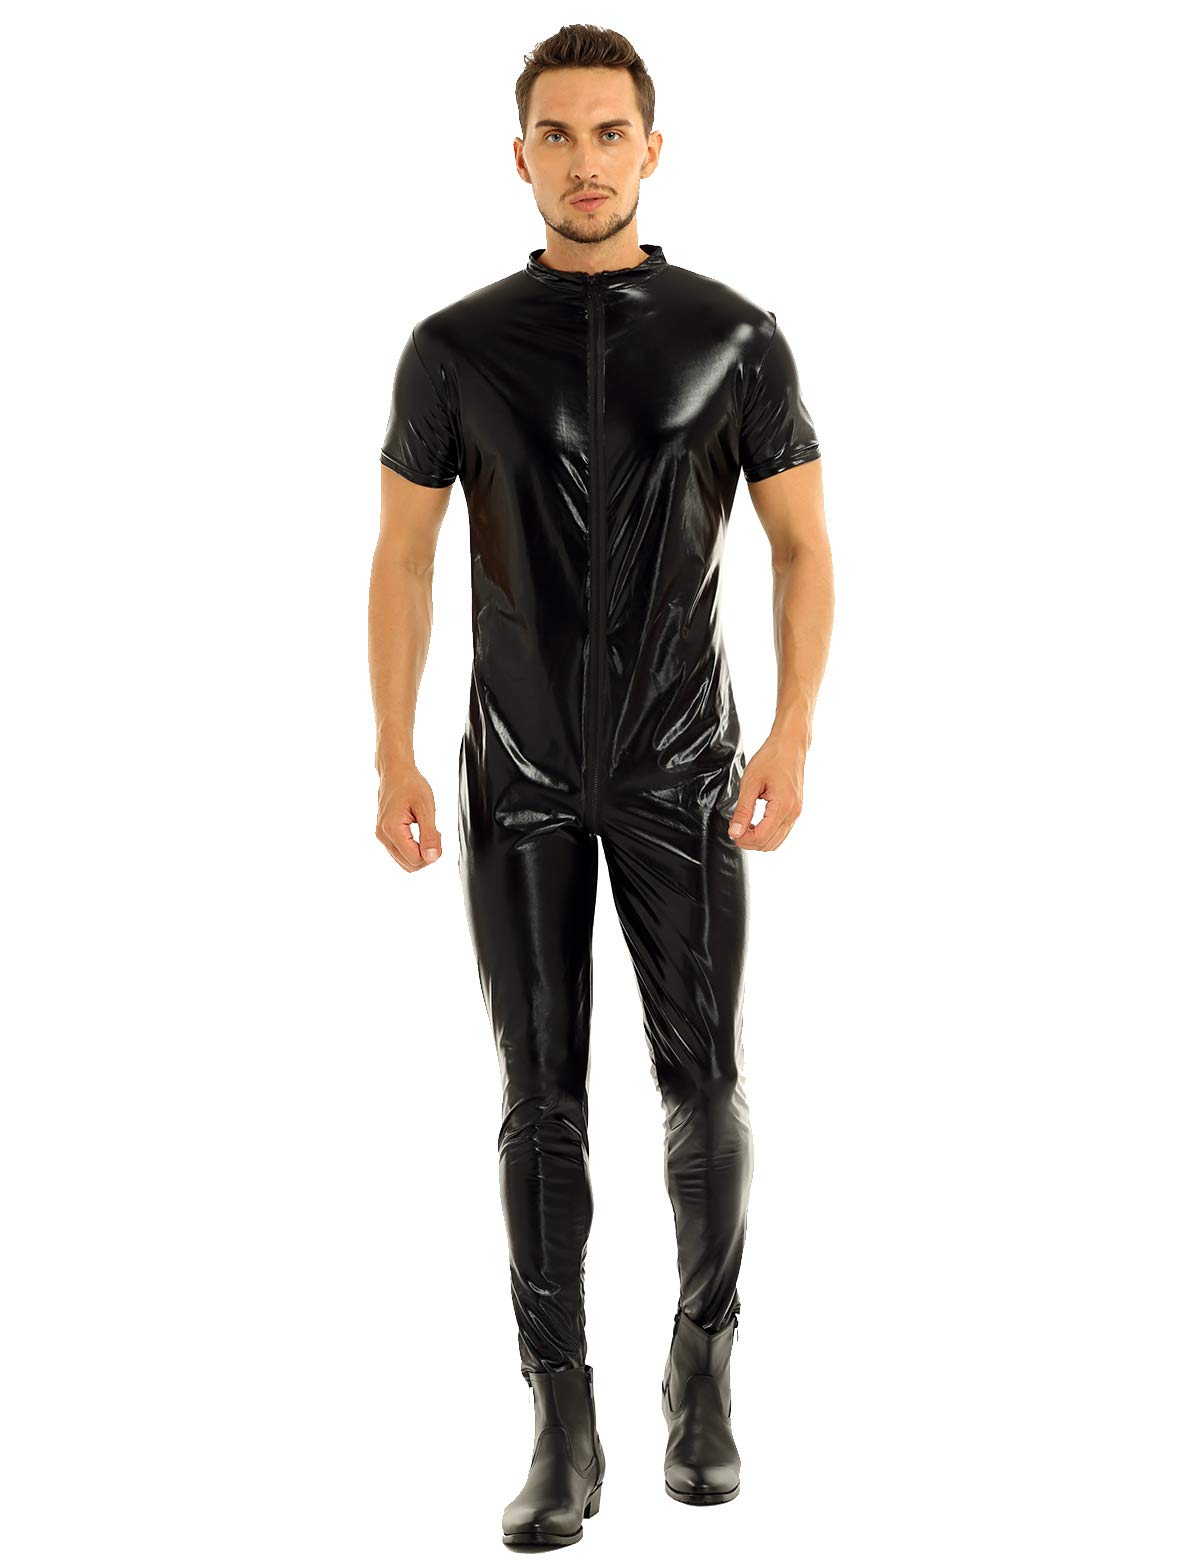 Inlzdz Mens Shiny Metallic Faux Leather Zippered Full Body Leotard Bodysuit Zentai Catsuit Black Large